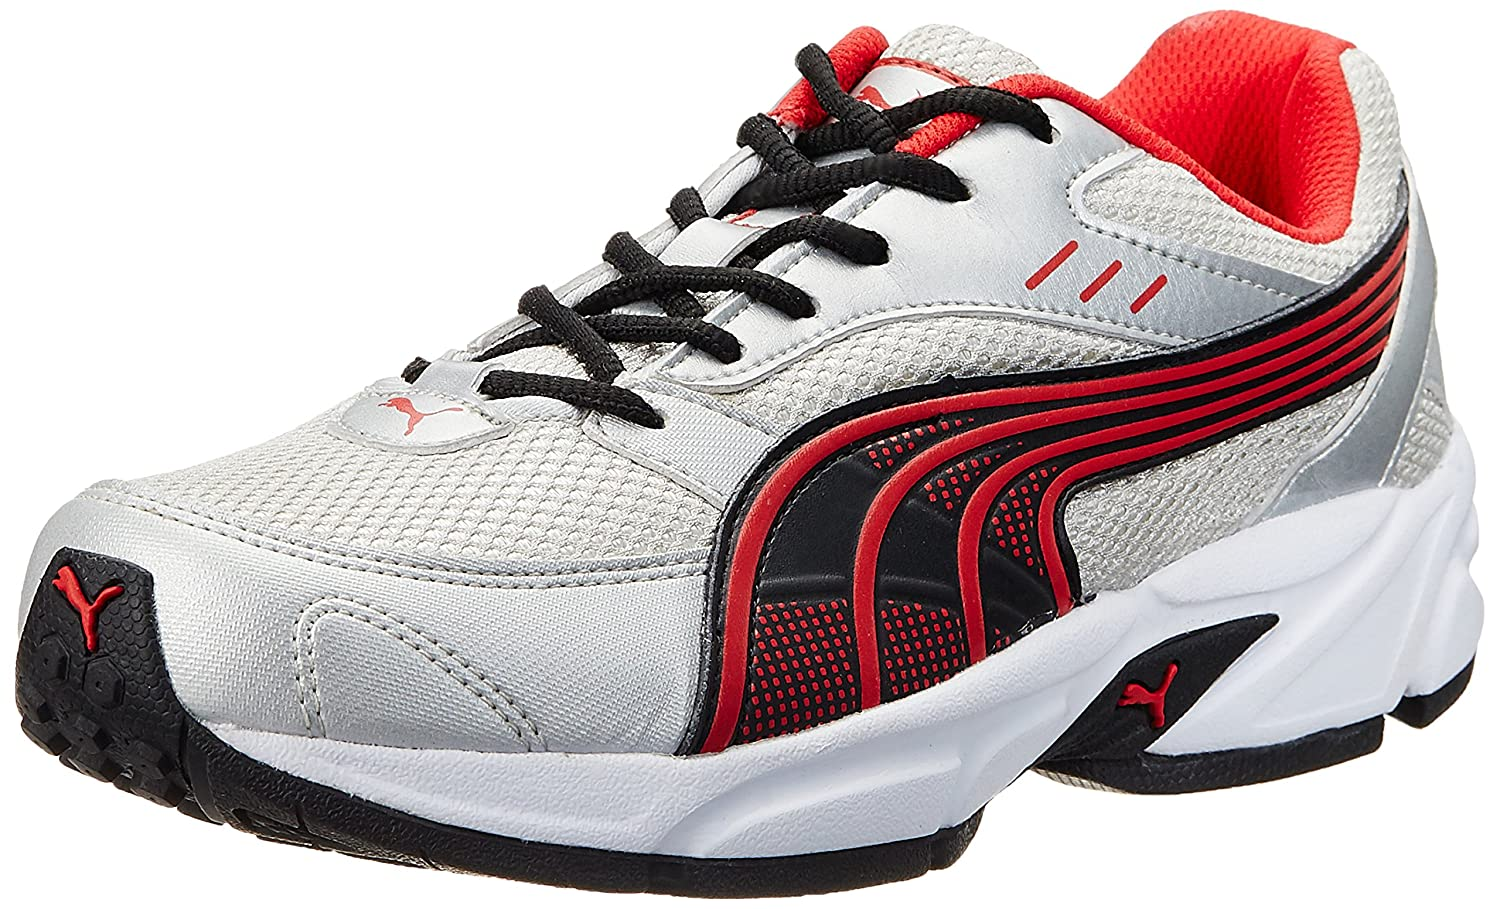 Puma Men's Pluto DP White-Black-High Risk Red Running Shoes - 8 UK/India  (42 EU): Buy Online at Low Prices in India - Amazon.in